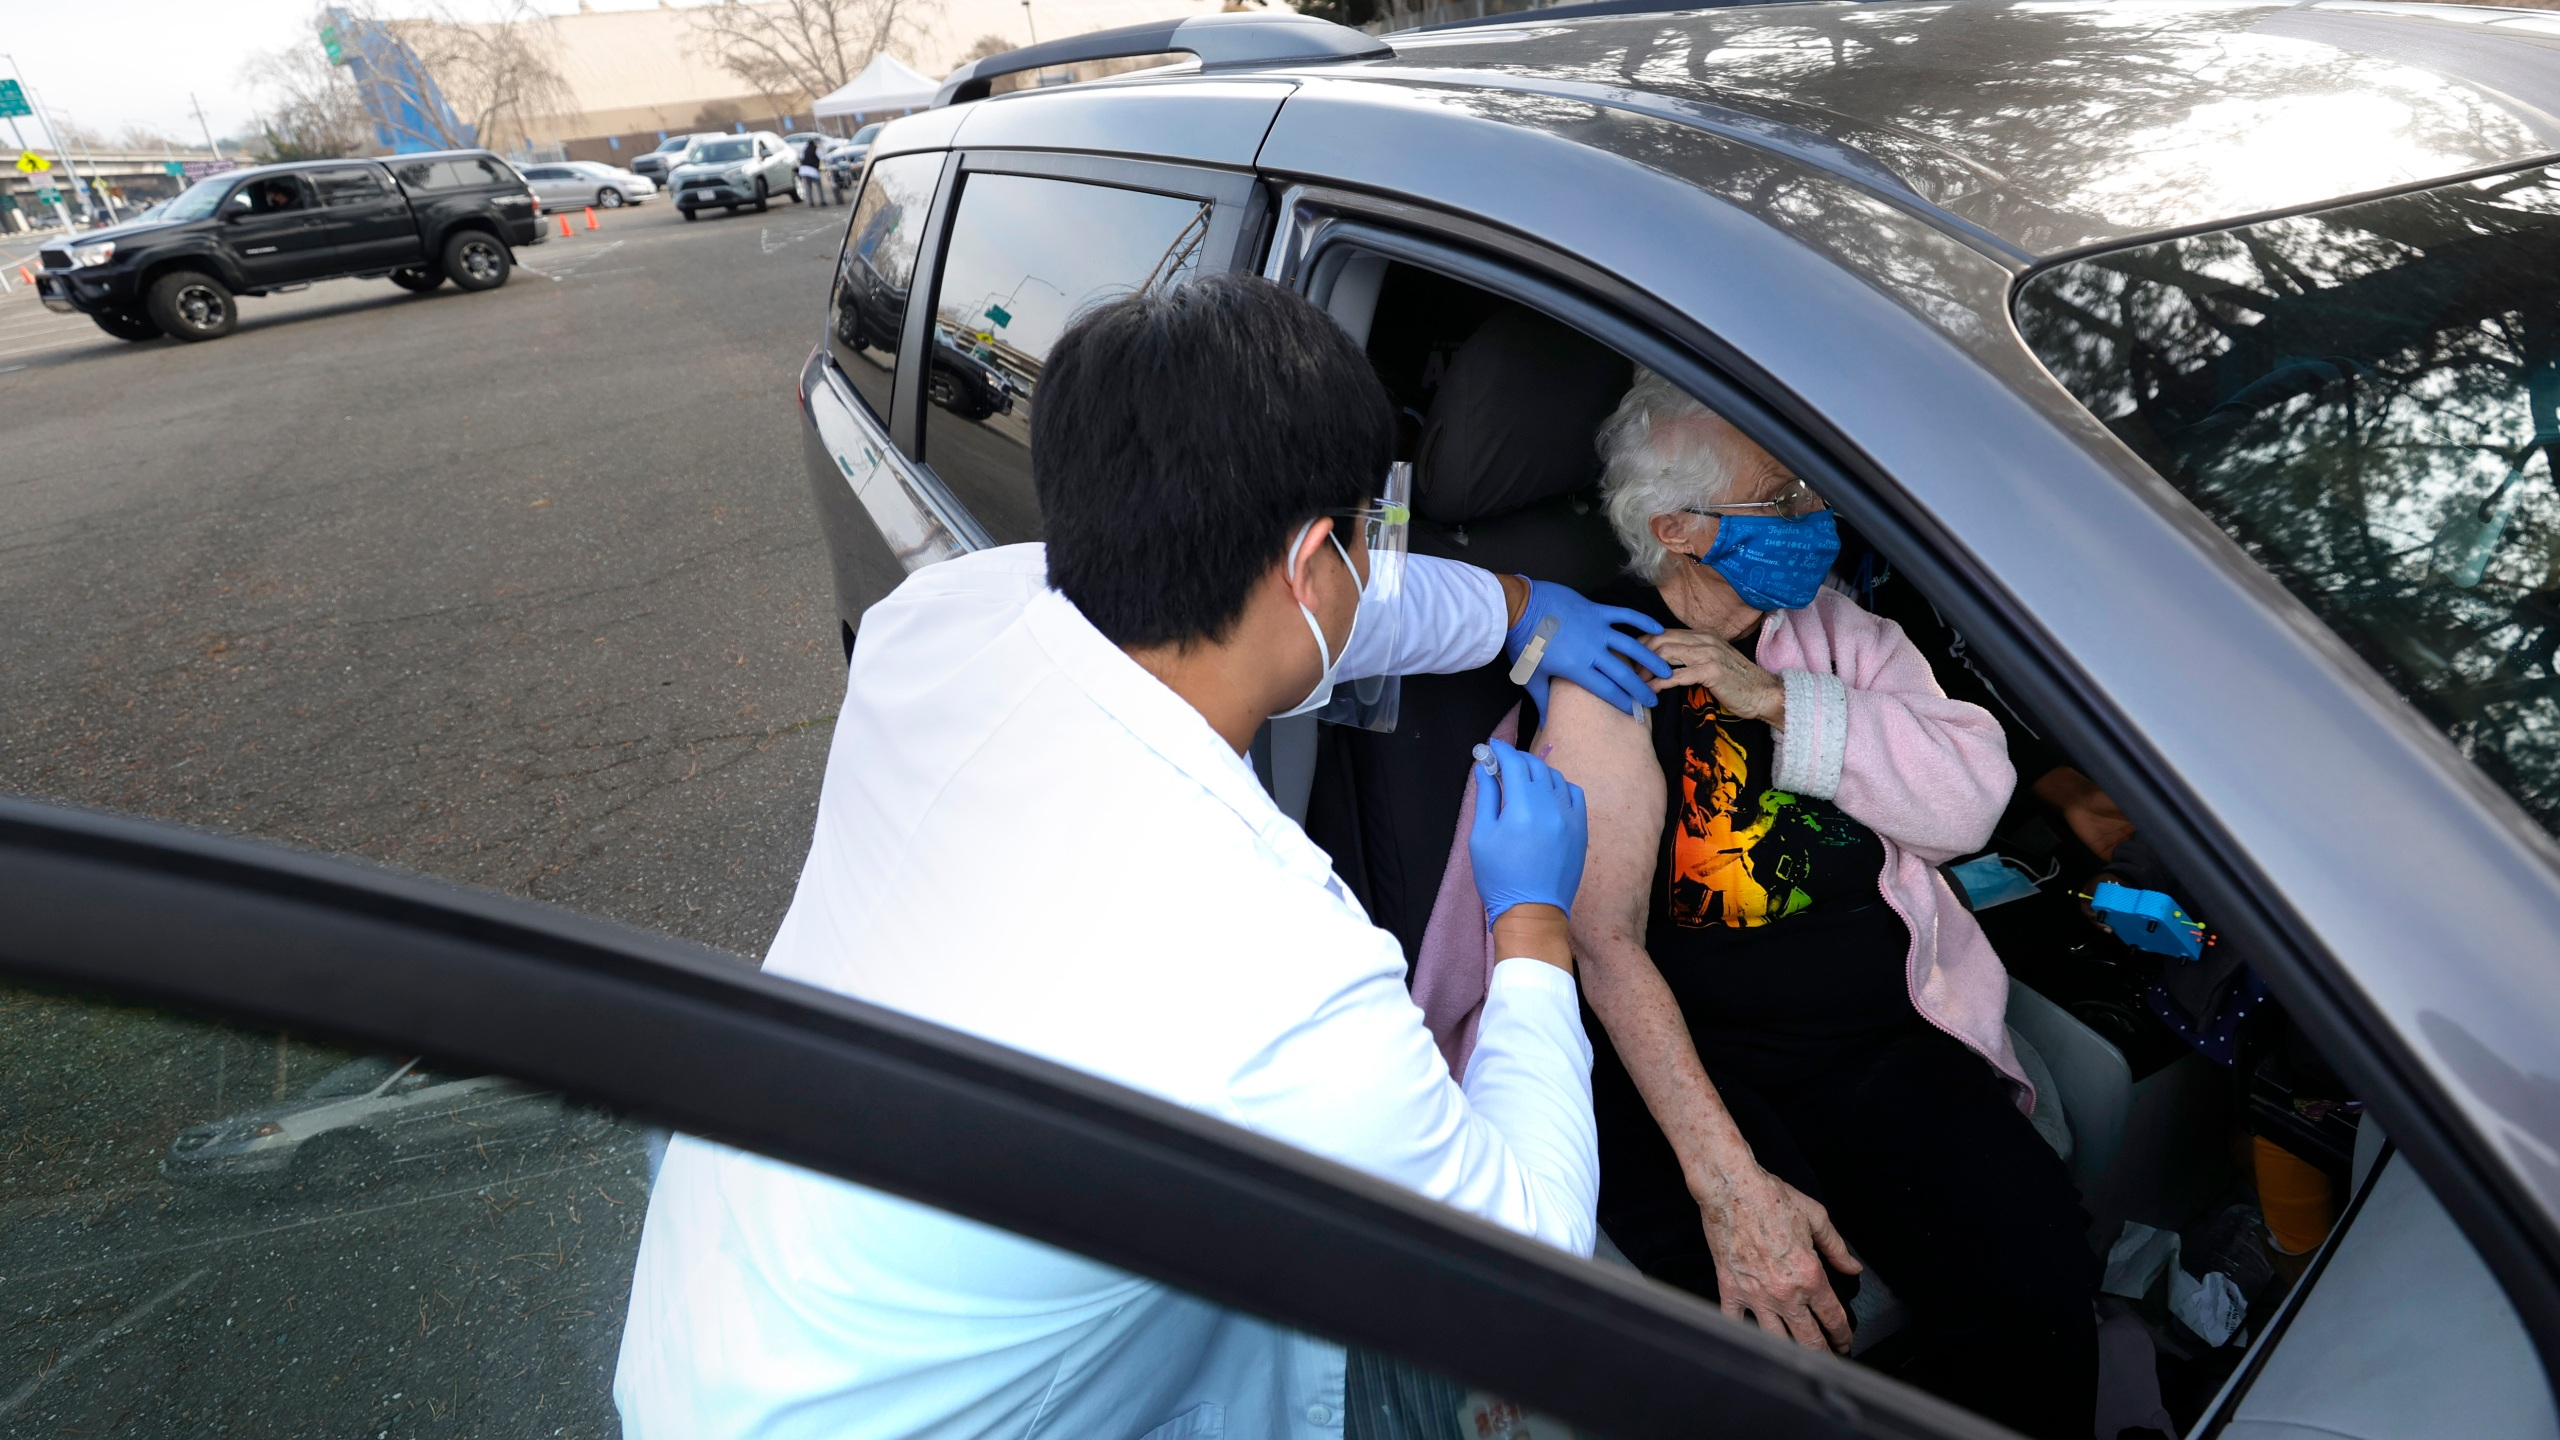 Safeway pharmacist Preston Young (L) administers a Moderna COVID-19 vaccination to Cecile Lusby (R) during a drive-thru vaccination clinic at the Sonoma County Fairgrounds on January 13, 2021 in Santa Rosa, California. (Justin Sullivan/Getty Images)